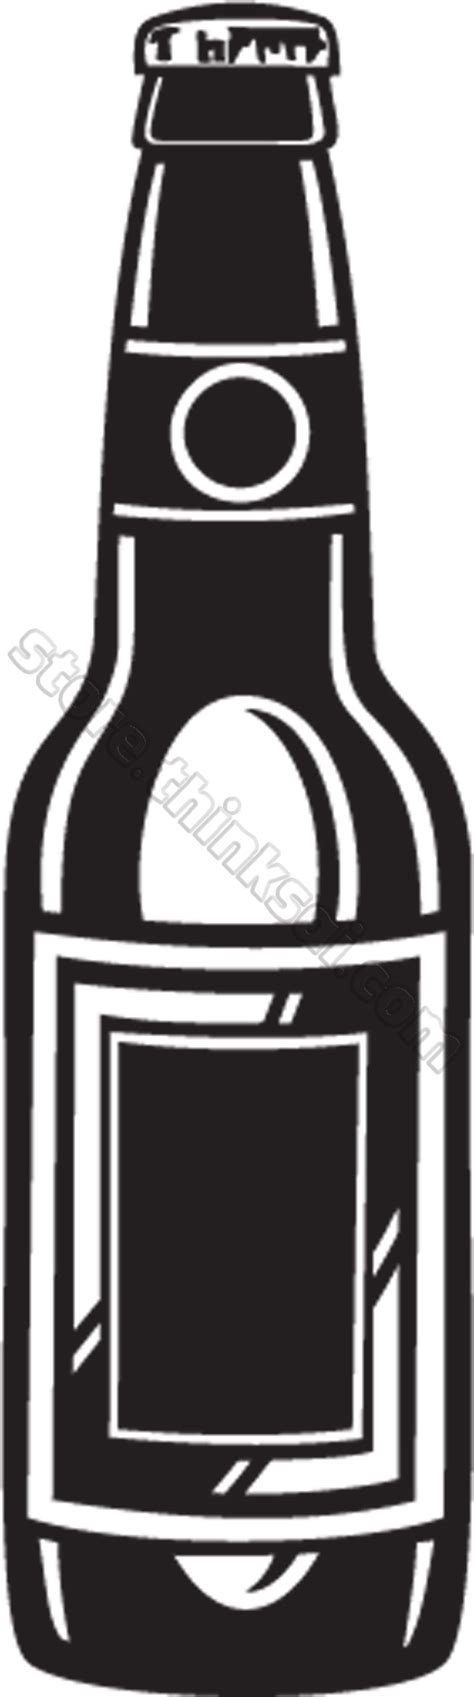 cartoon beer black and white beer mug beer bottle clip art cliparting com